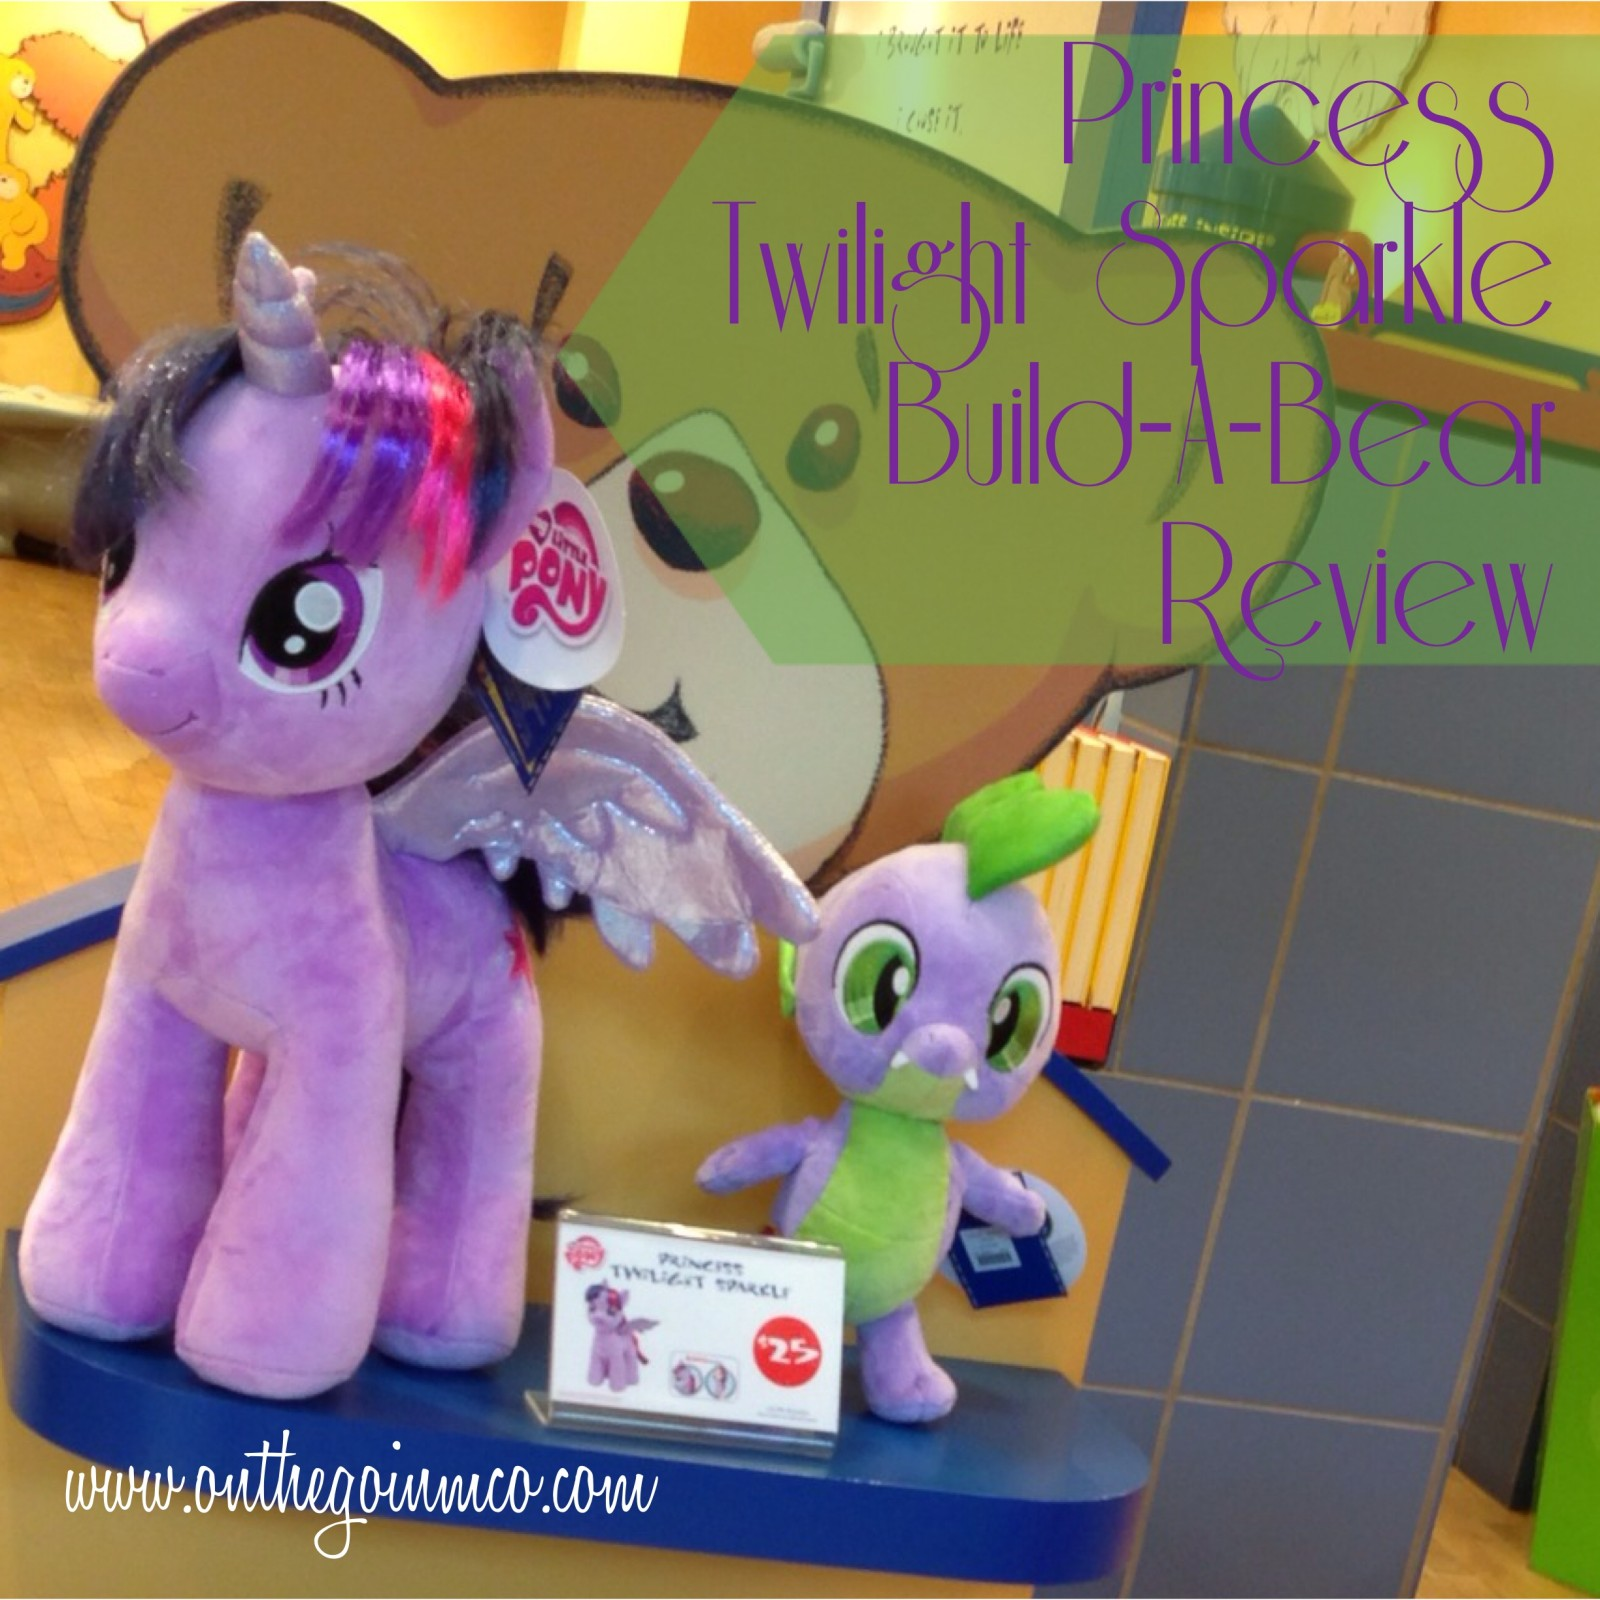 Build-A-Bear Workshop Twilight Sparkle Review